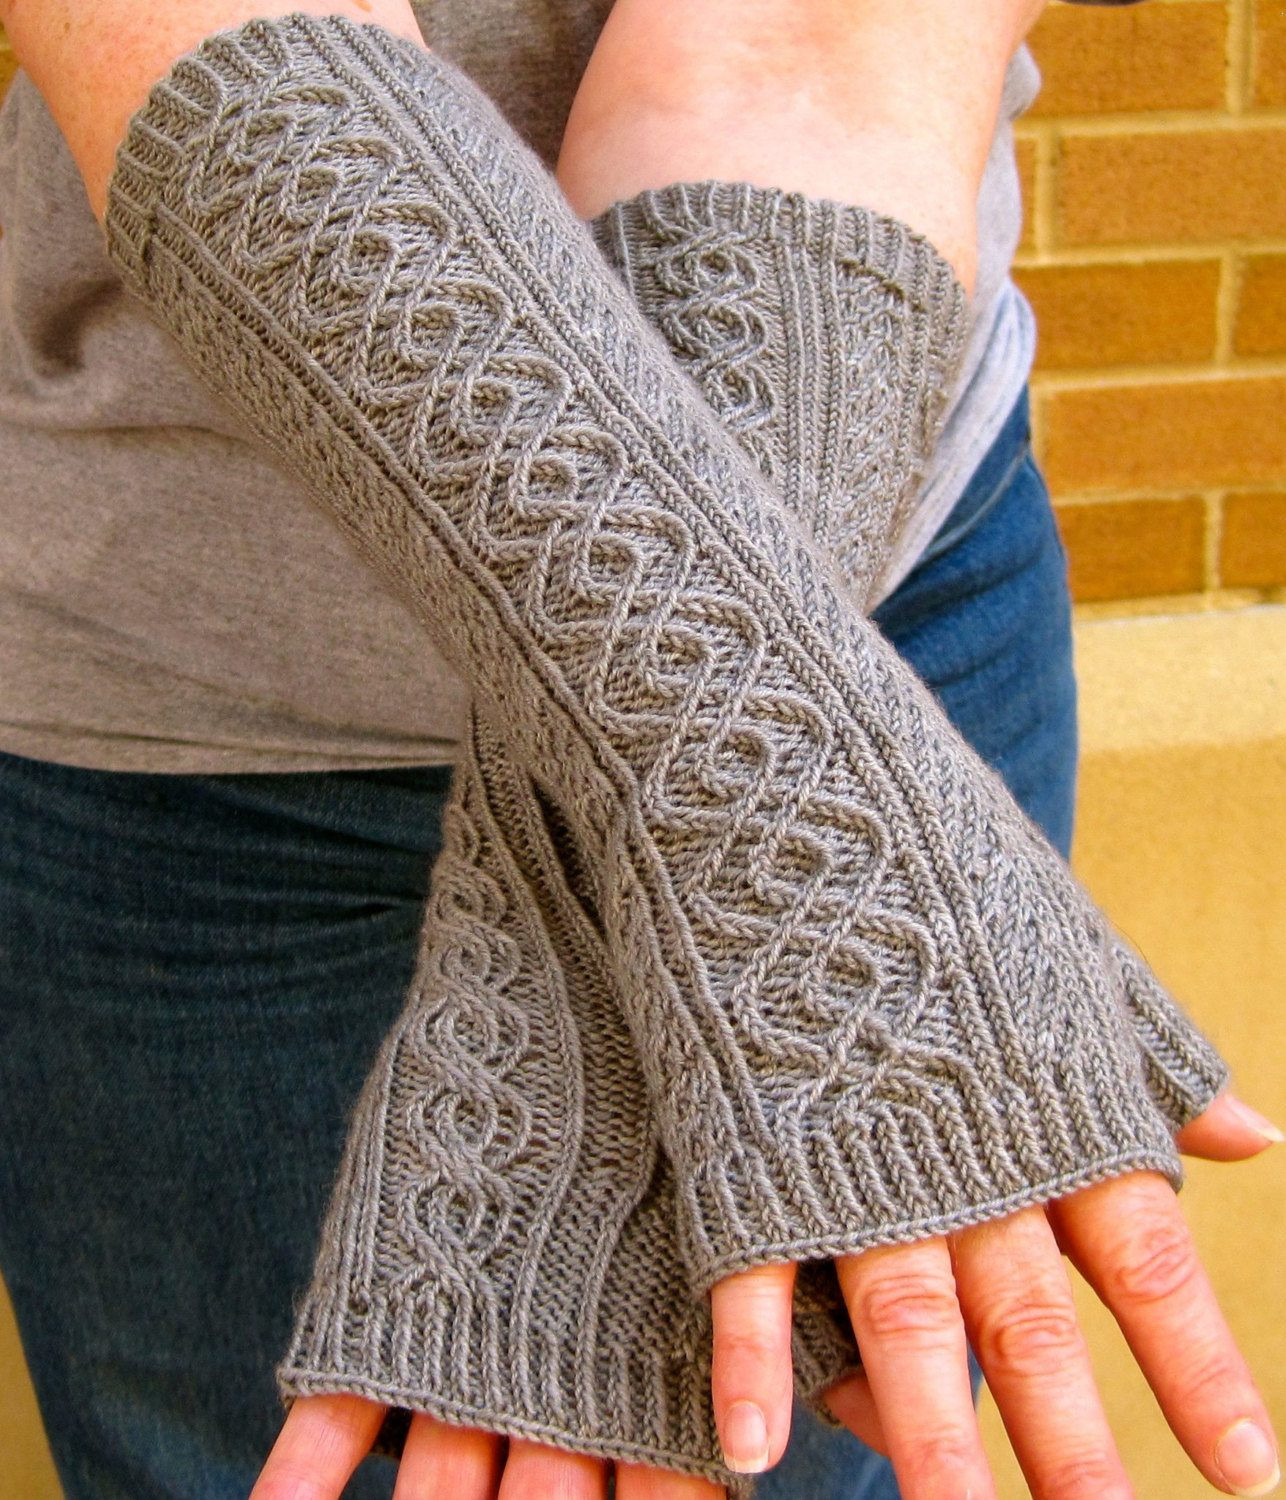 Best Of Twisty Mitts Knitting Patterns Fingerless Gloves Mittens Of Awesome 47 Models Fingerless Gloves Mittens